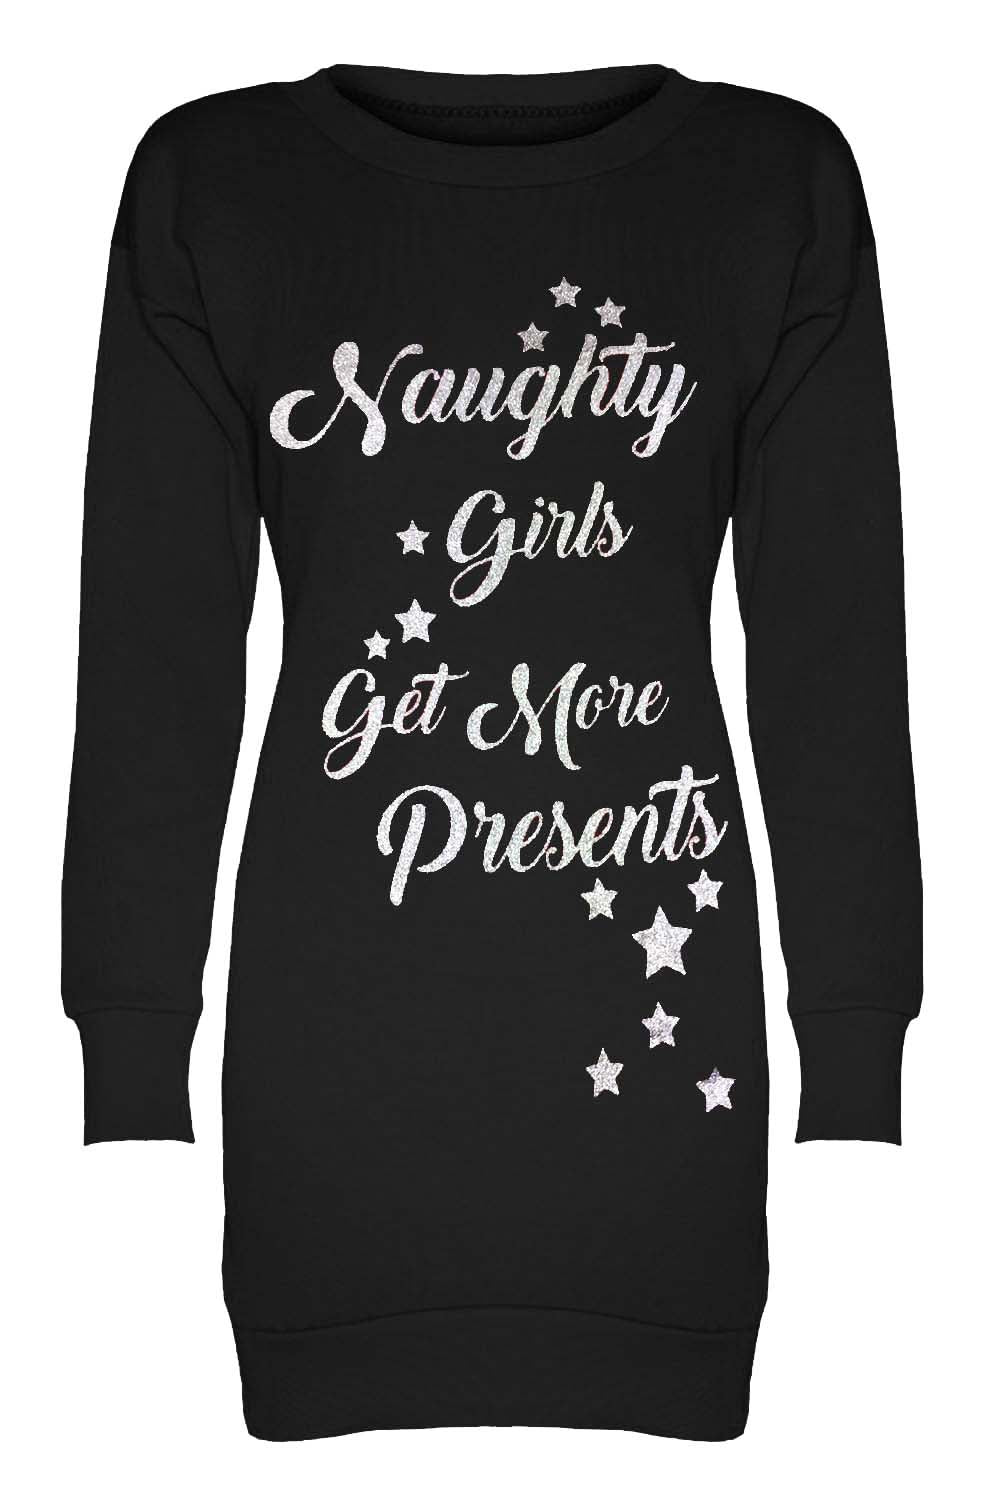 Naughty Or Nice Slogan Christmas Jumper - bejealous-com